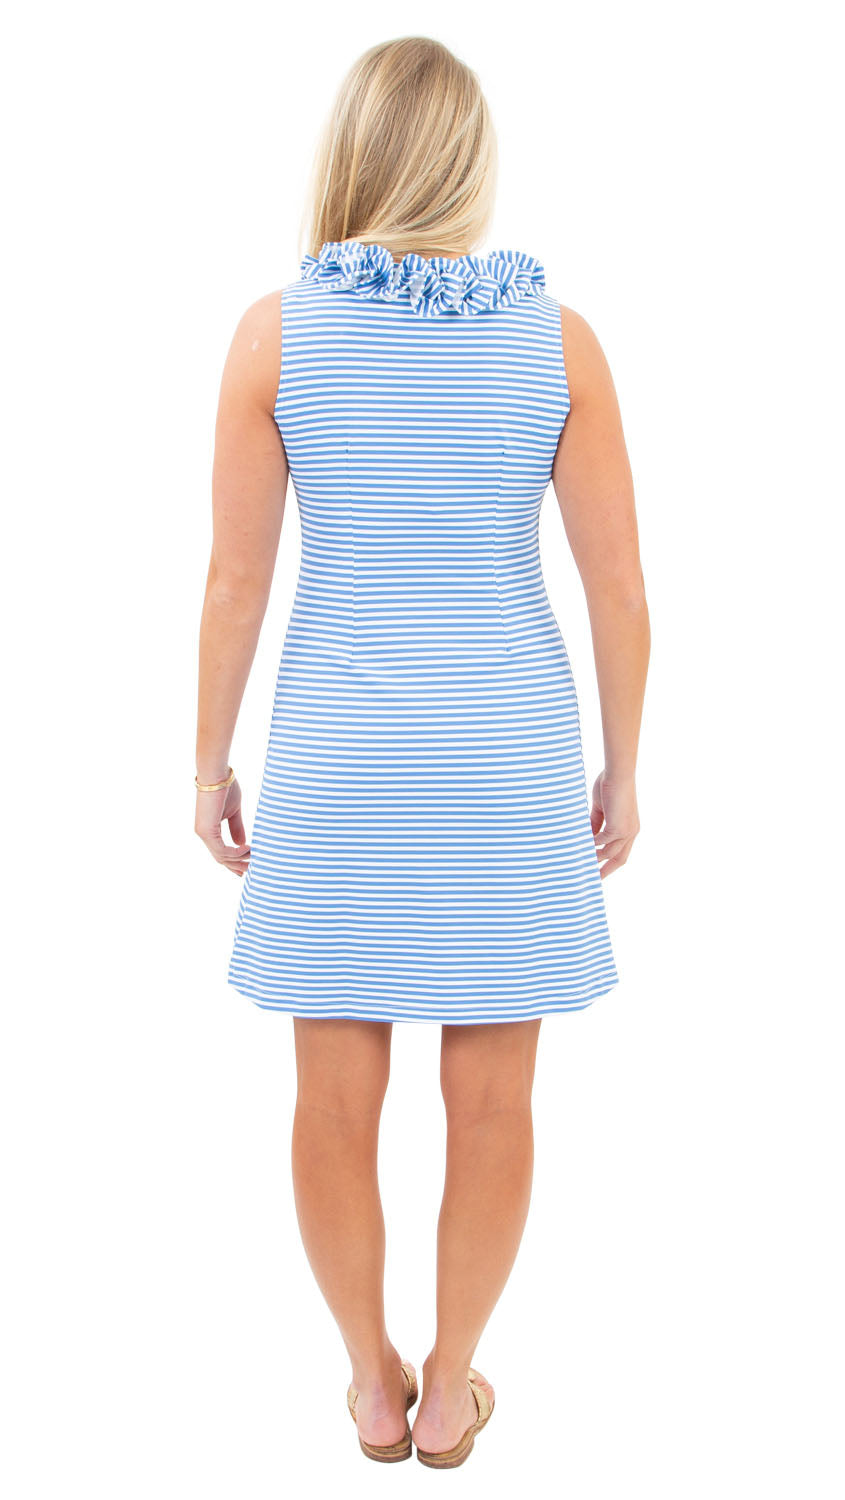 Cricket Sleeveless Dress - Azure/White Stripe